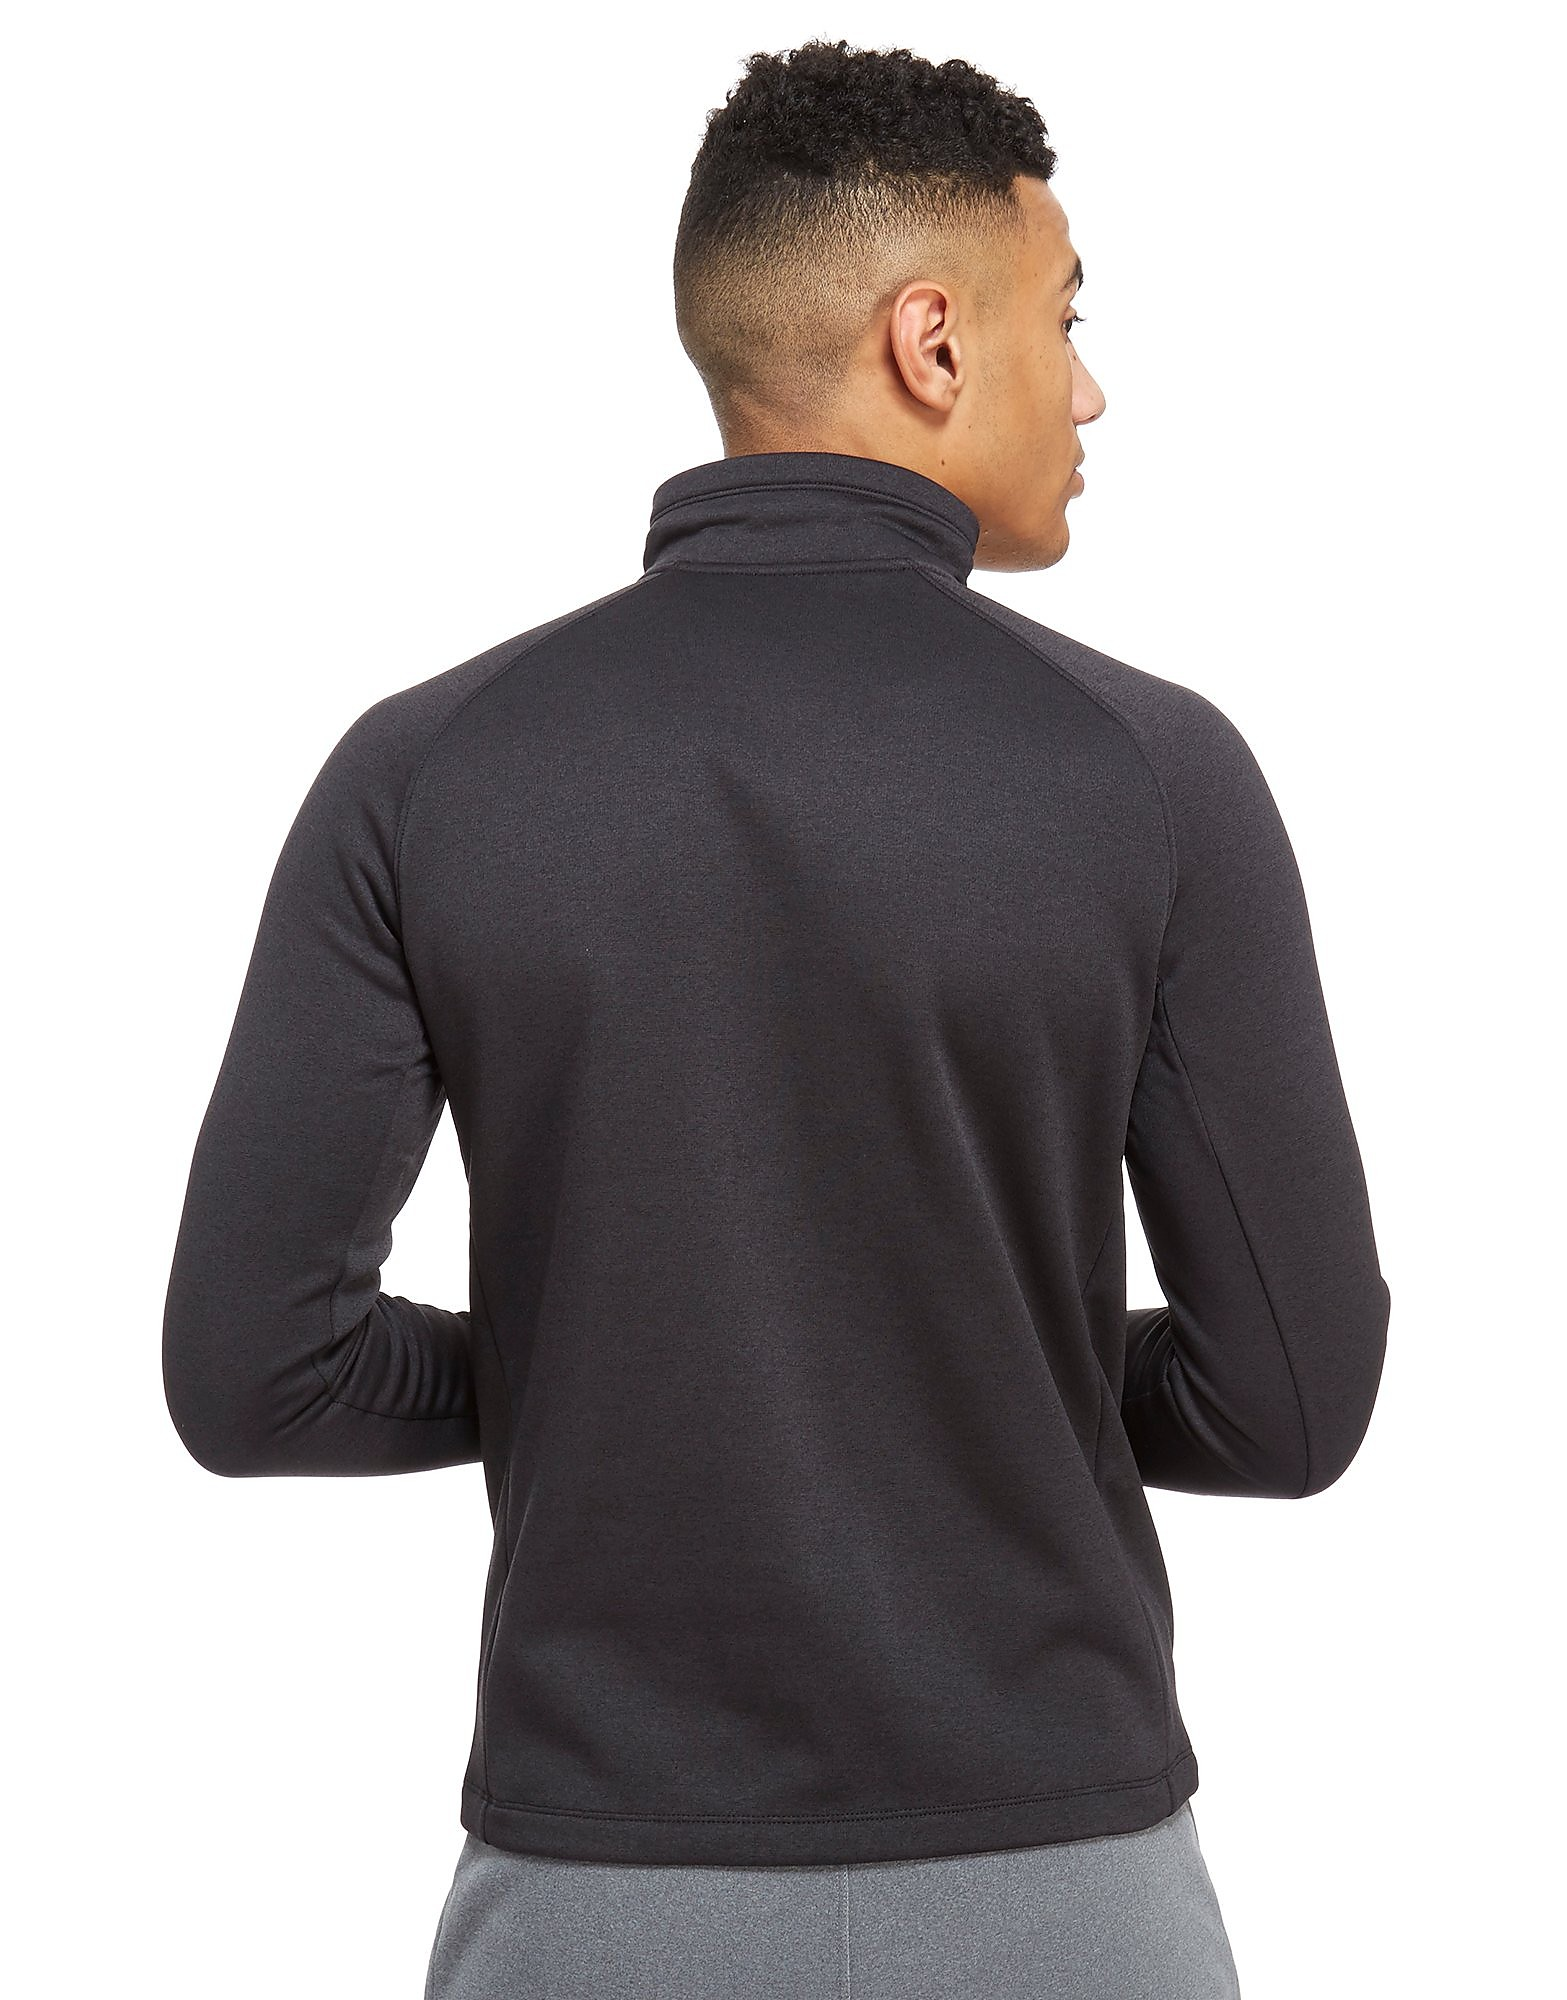 The North Face Canyonlands 1/2 Zip Top